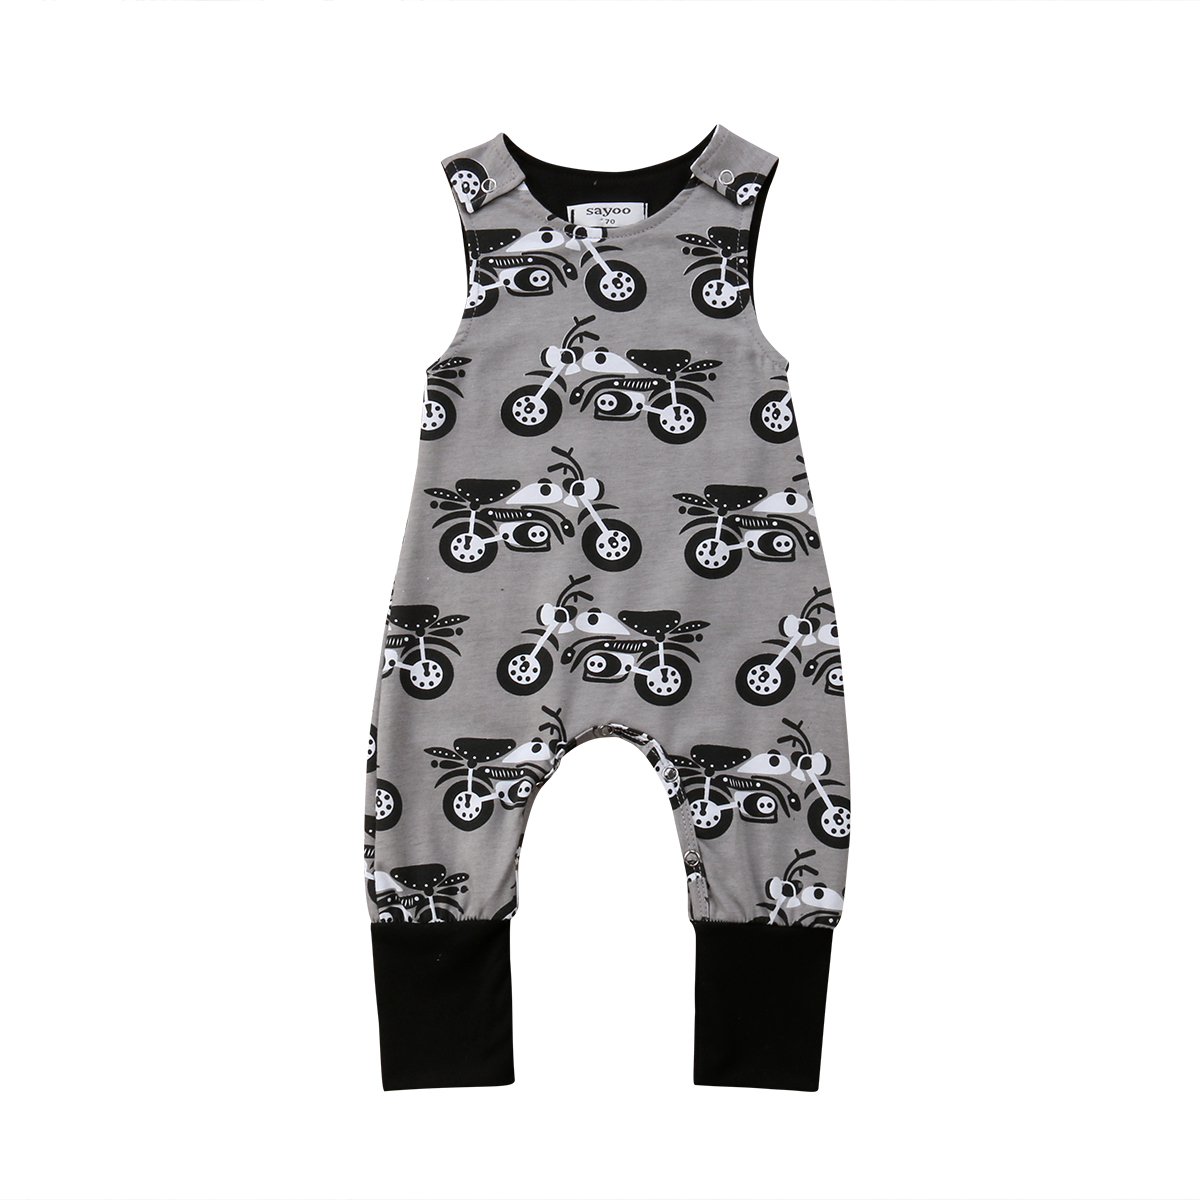 Baby Boy Kids Newborn Infant Motorcycle Print   Romper   Sleeveless Jumpsuit Sunsuit Cotton Clothes Outfits